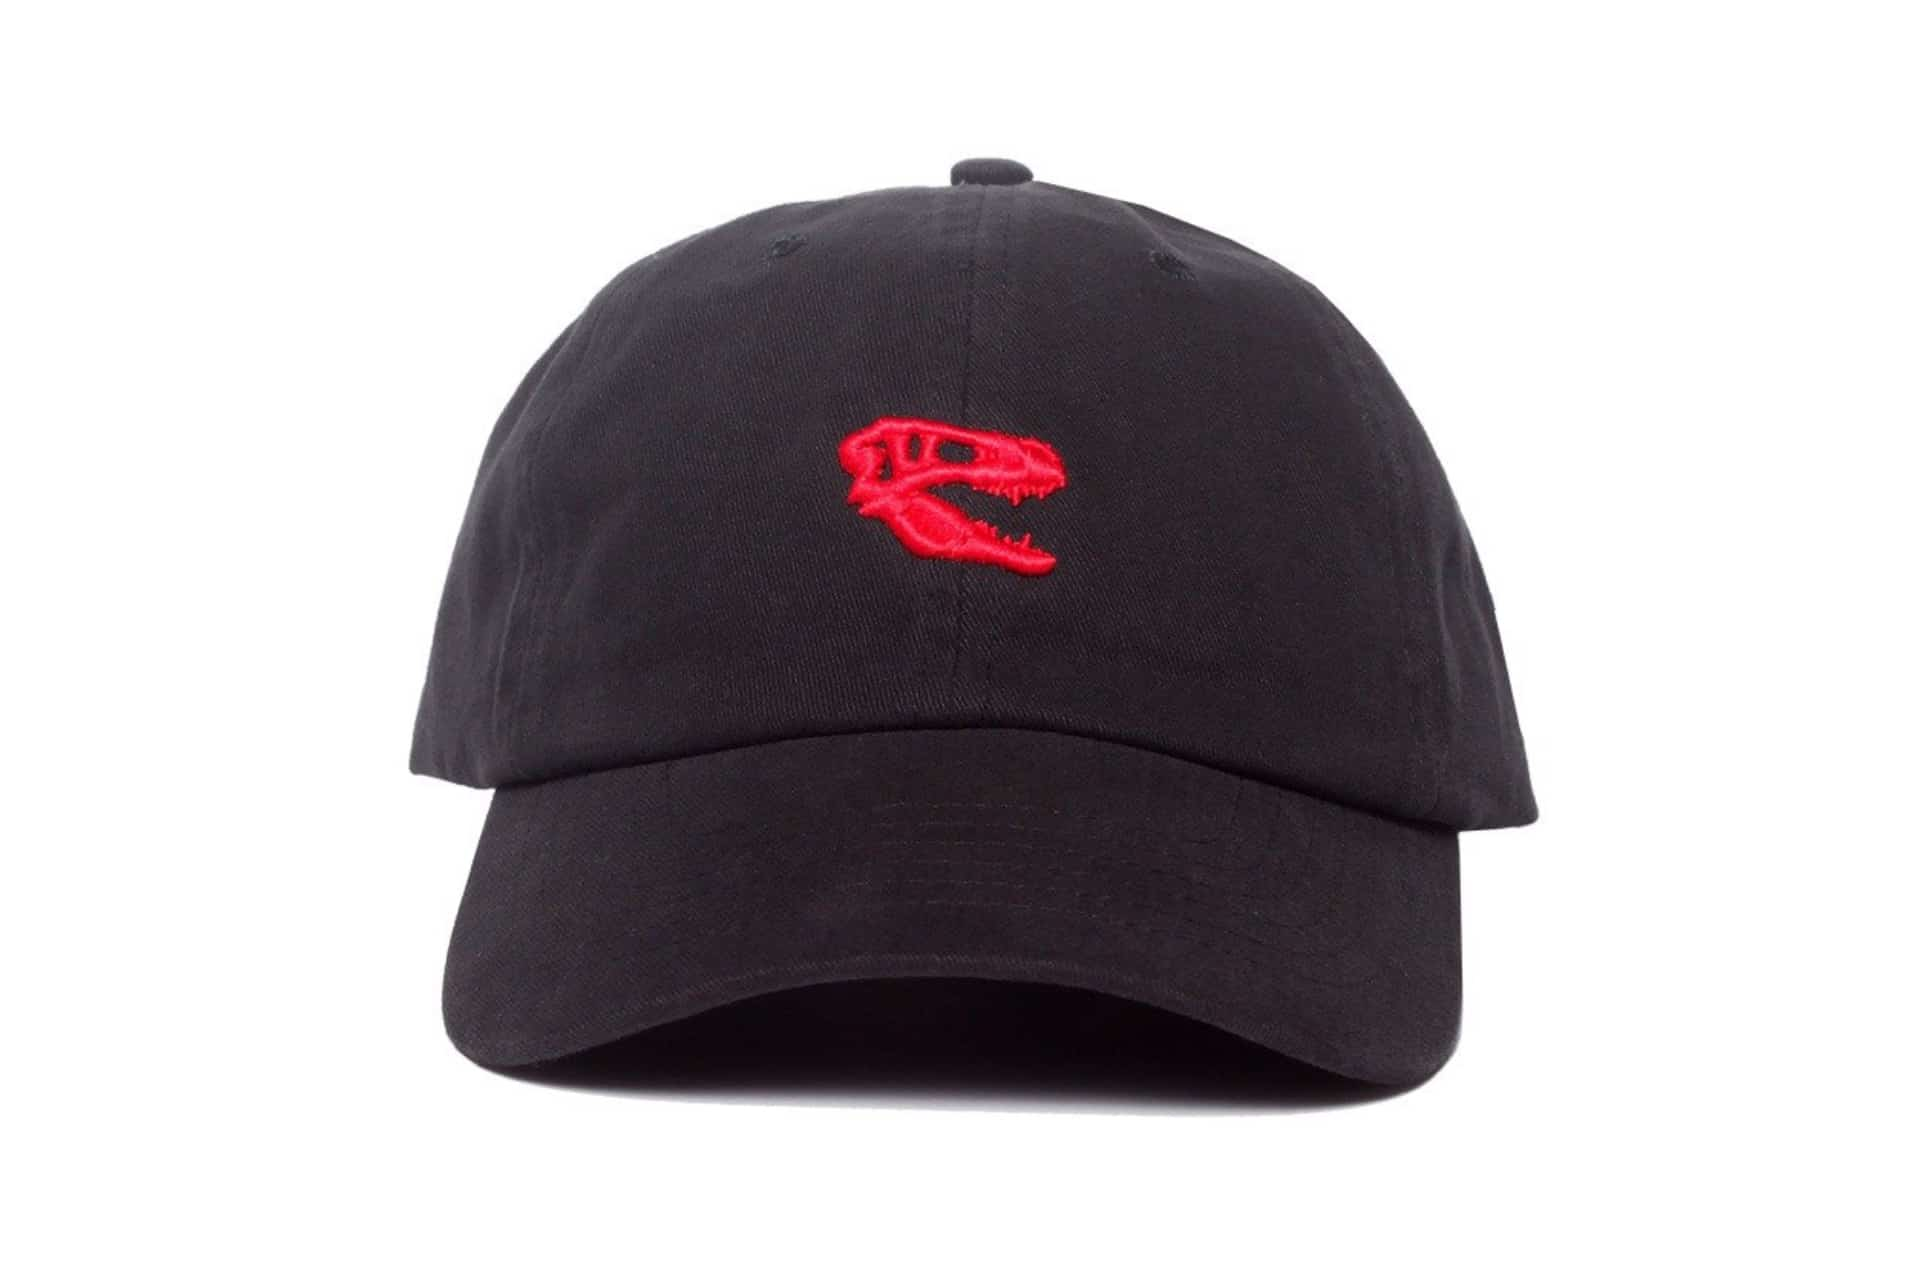 Black baseball cap with red Raptors logo